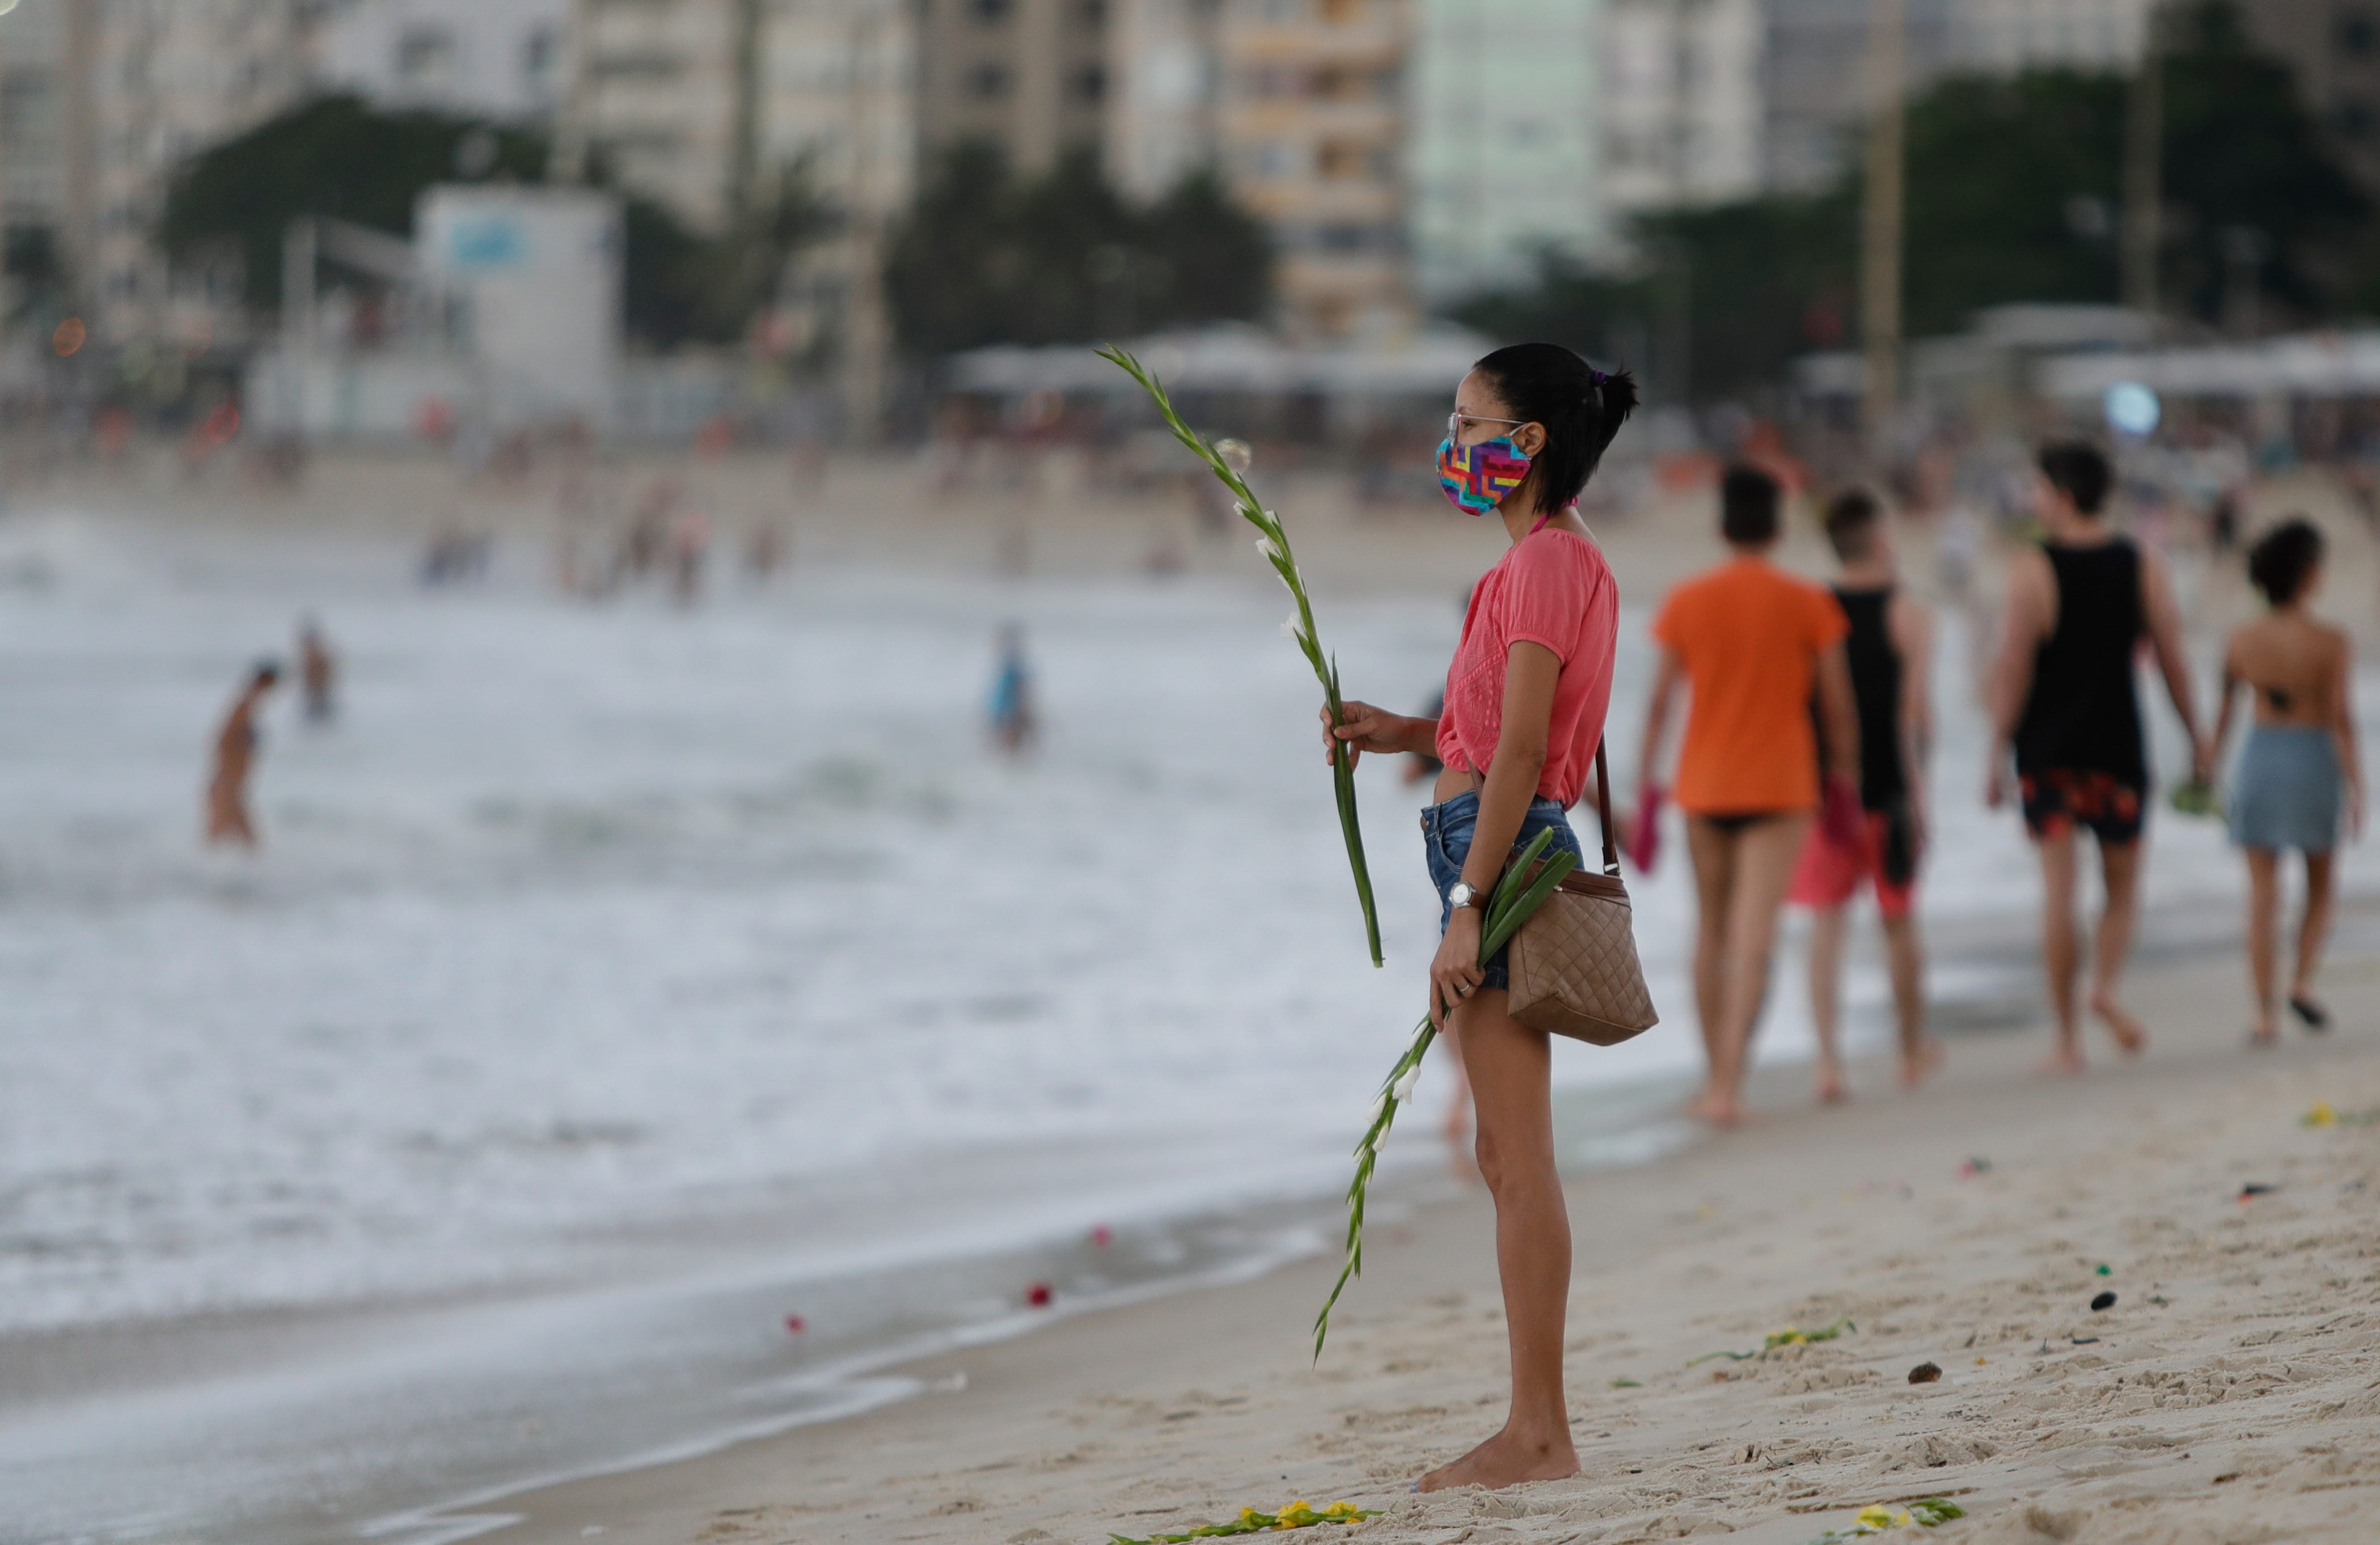 Brazilian beaches packed over holidays even as COVID death toll neared 200,000